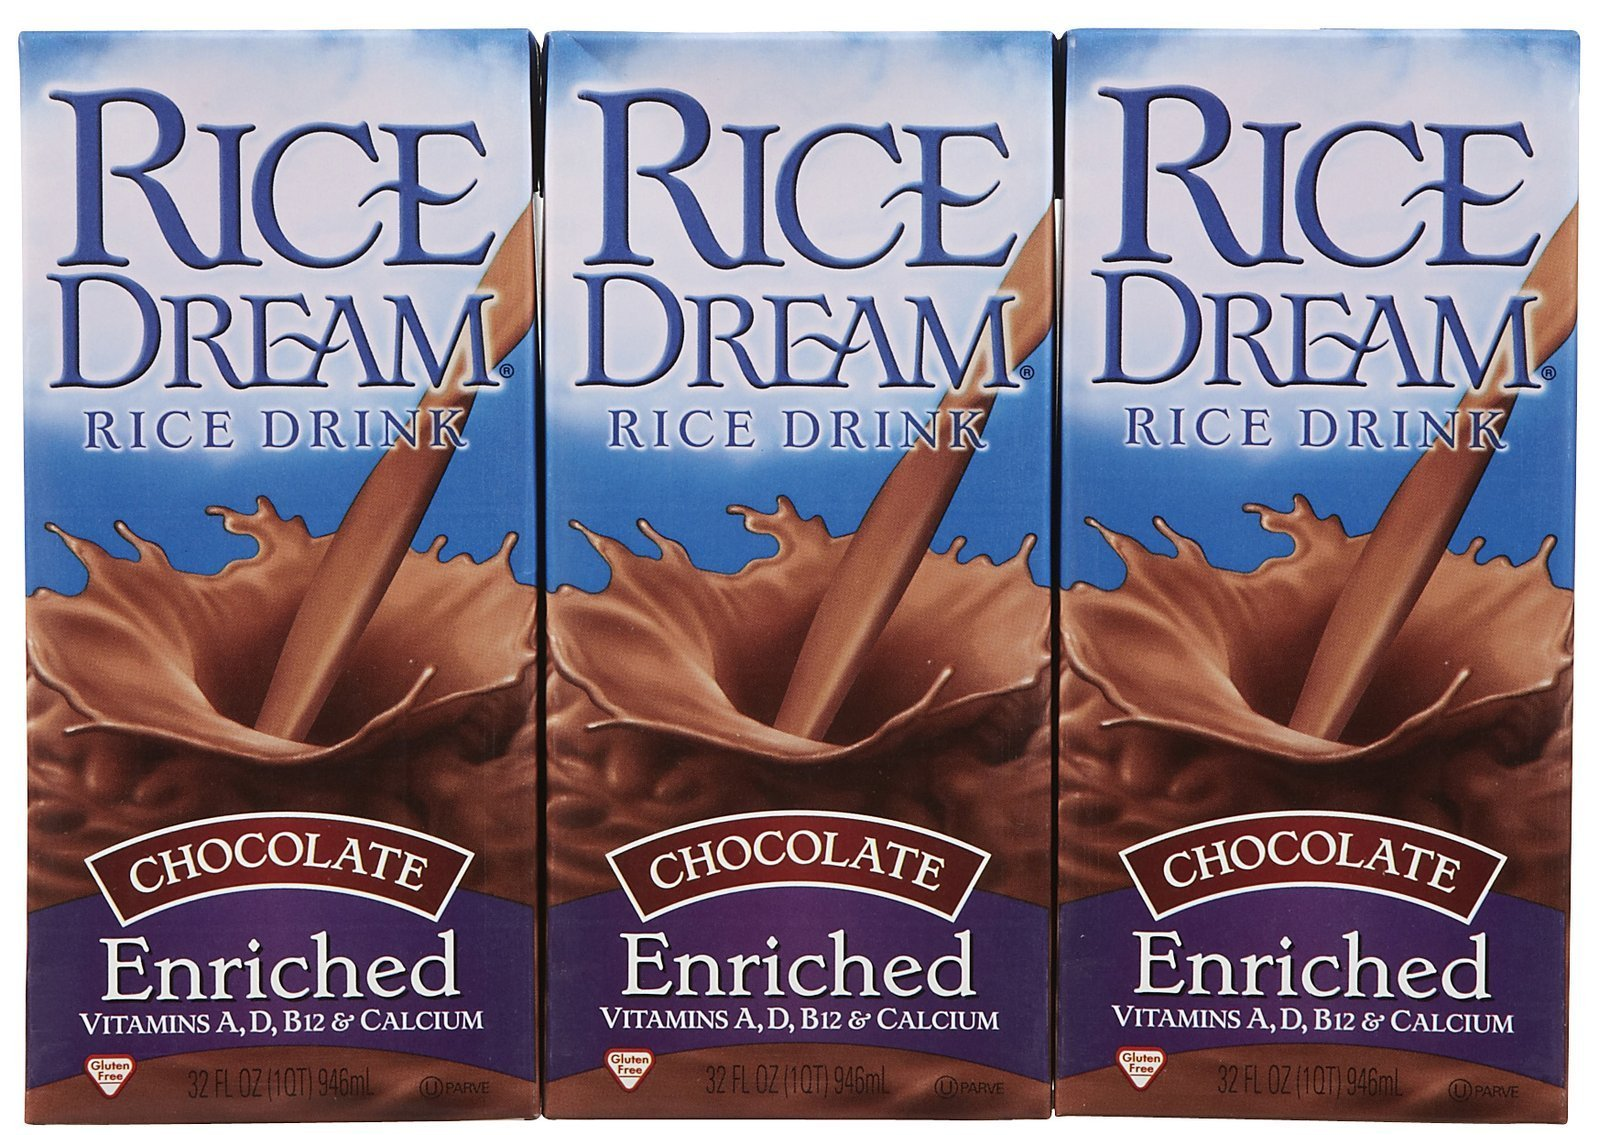 Dream Rice Dream Drink, Enriched Chocolate, 32 oz, 3 pk by Dream